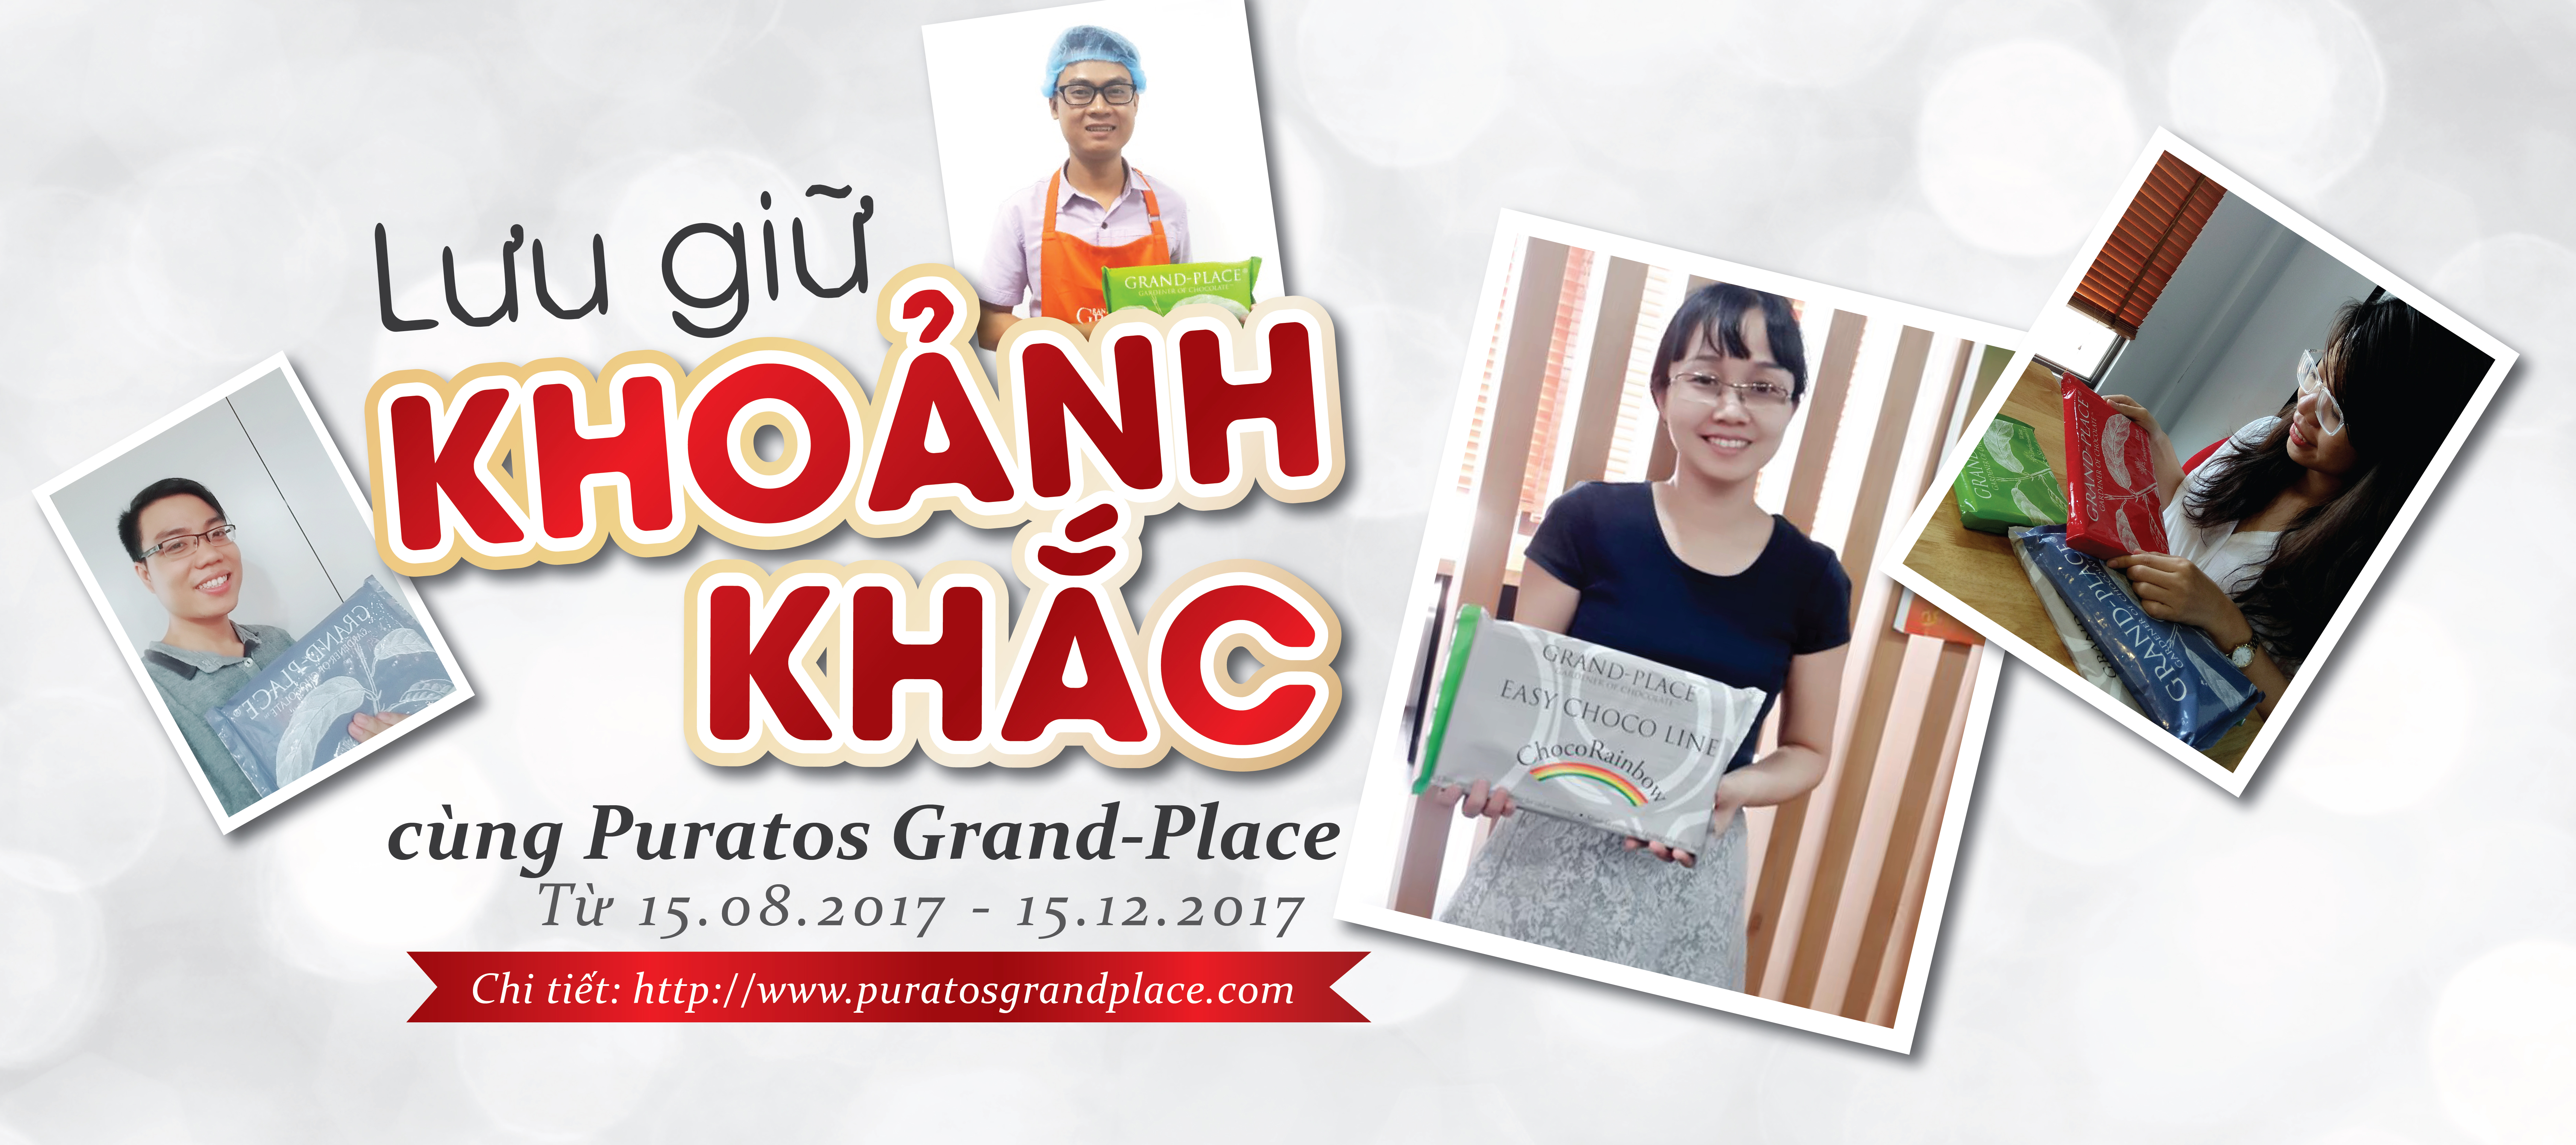 Selfie with Puratos Grand-Place competition